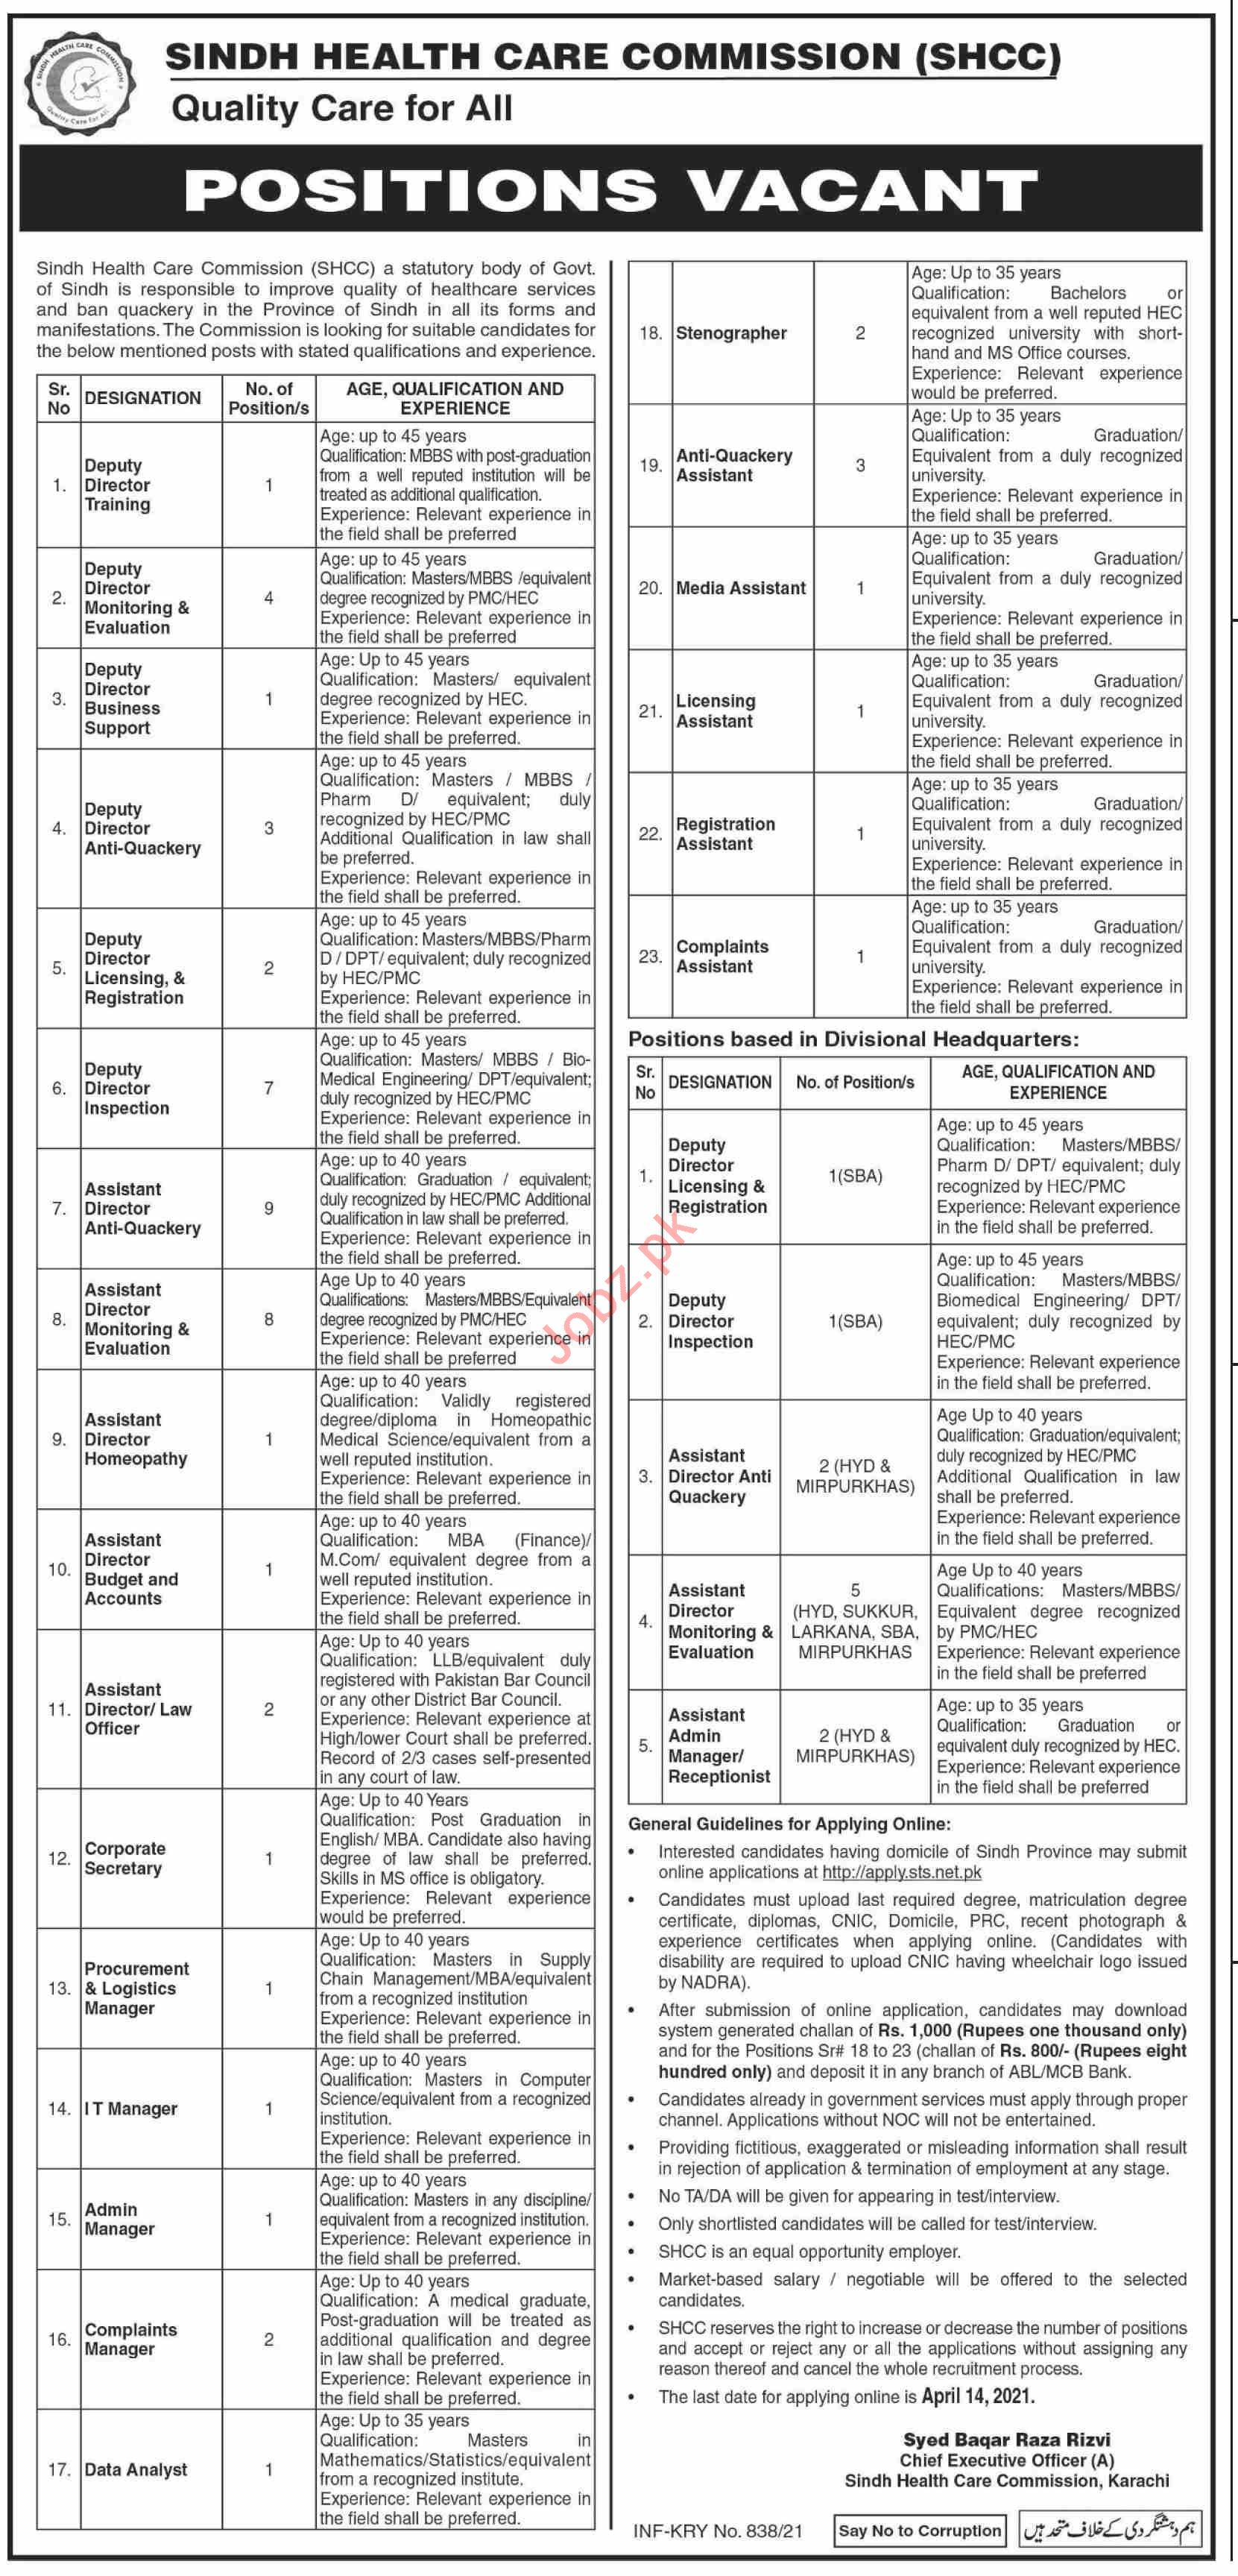 Sindh Health Care Commission SHCC Jobs 2021 for Director